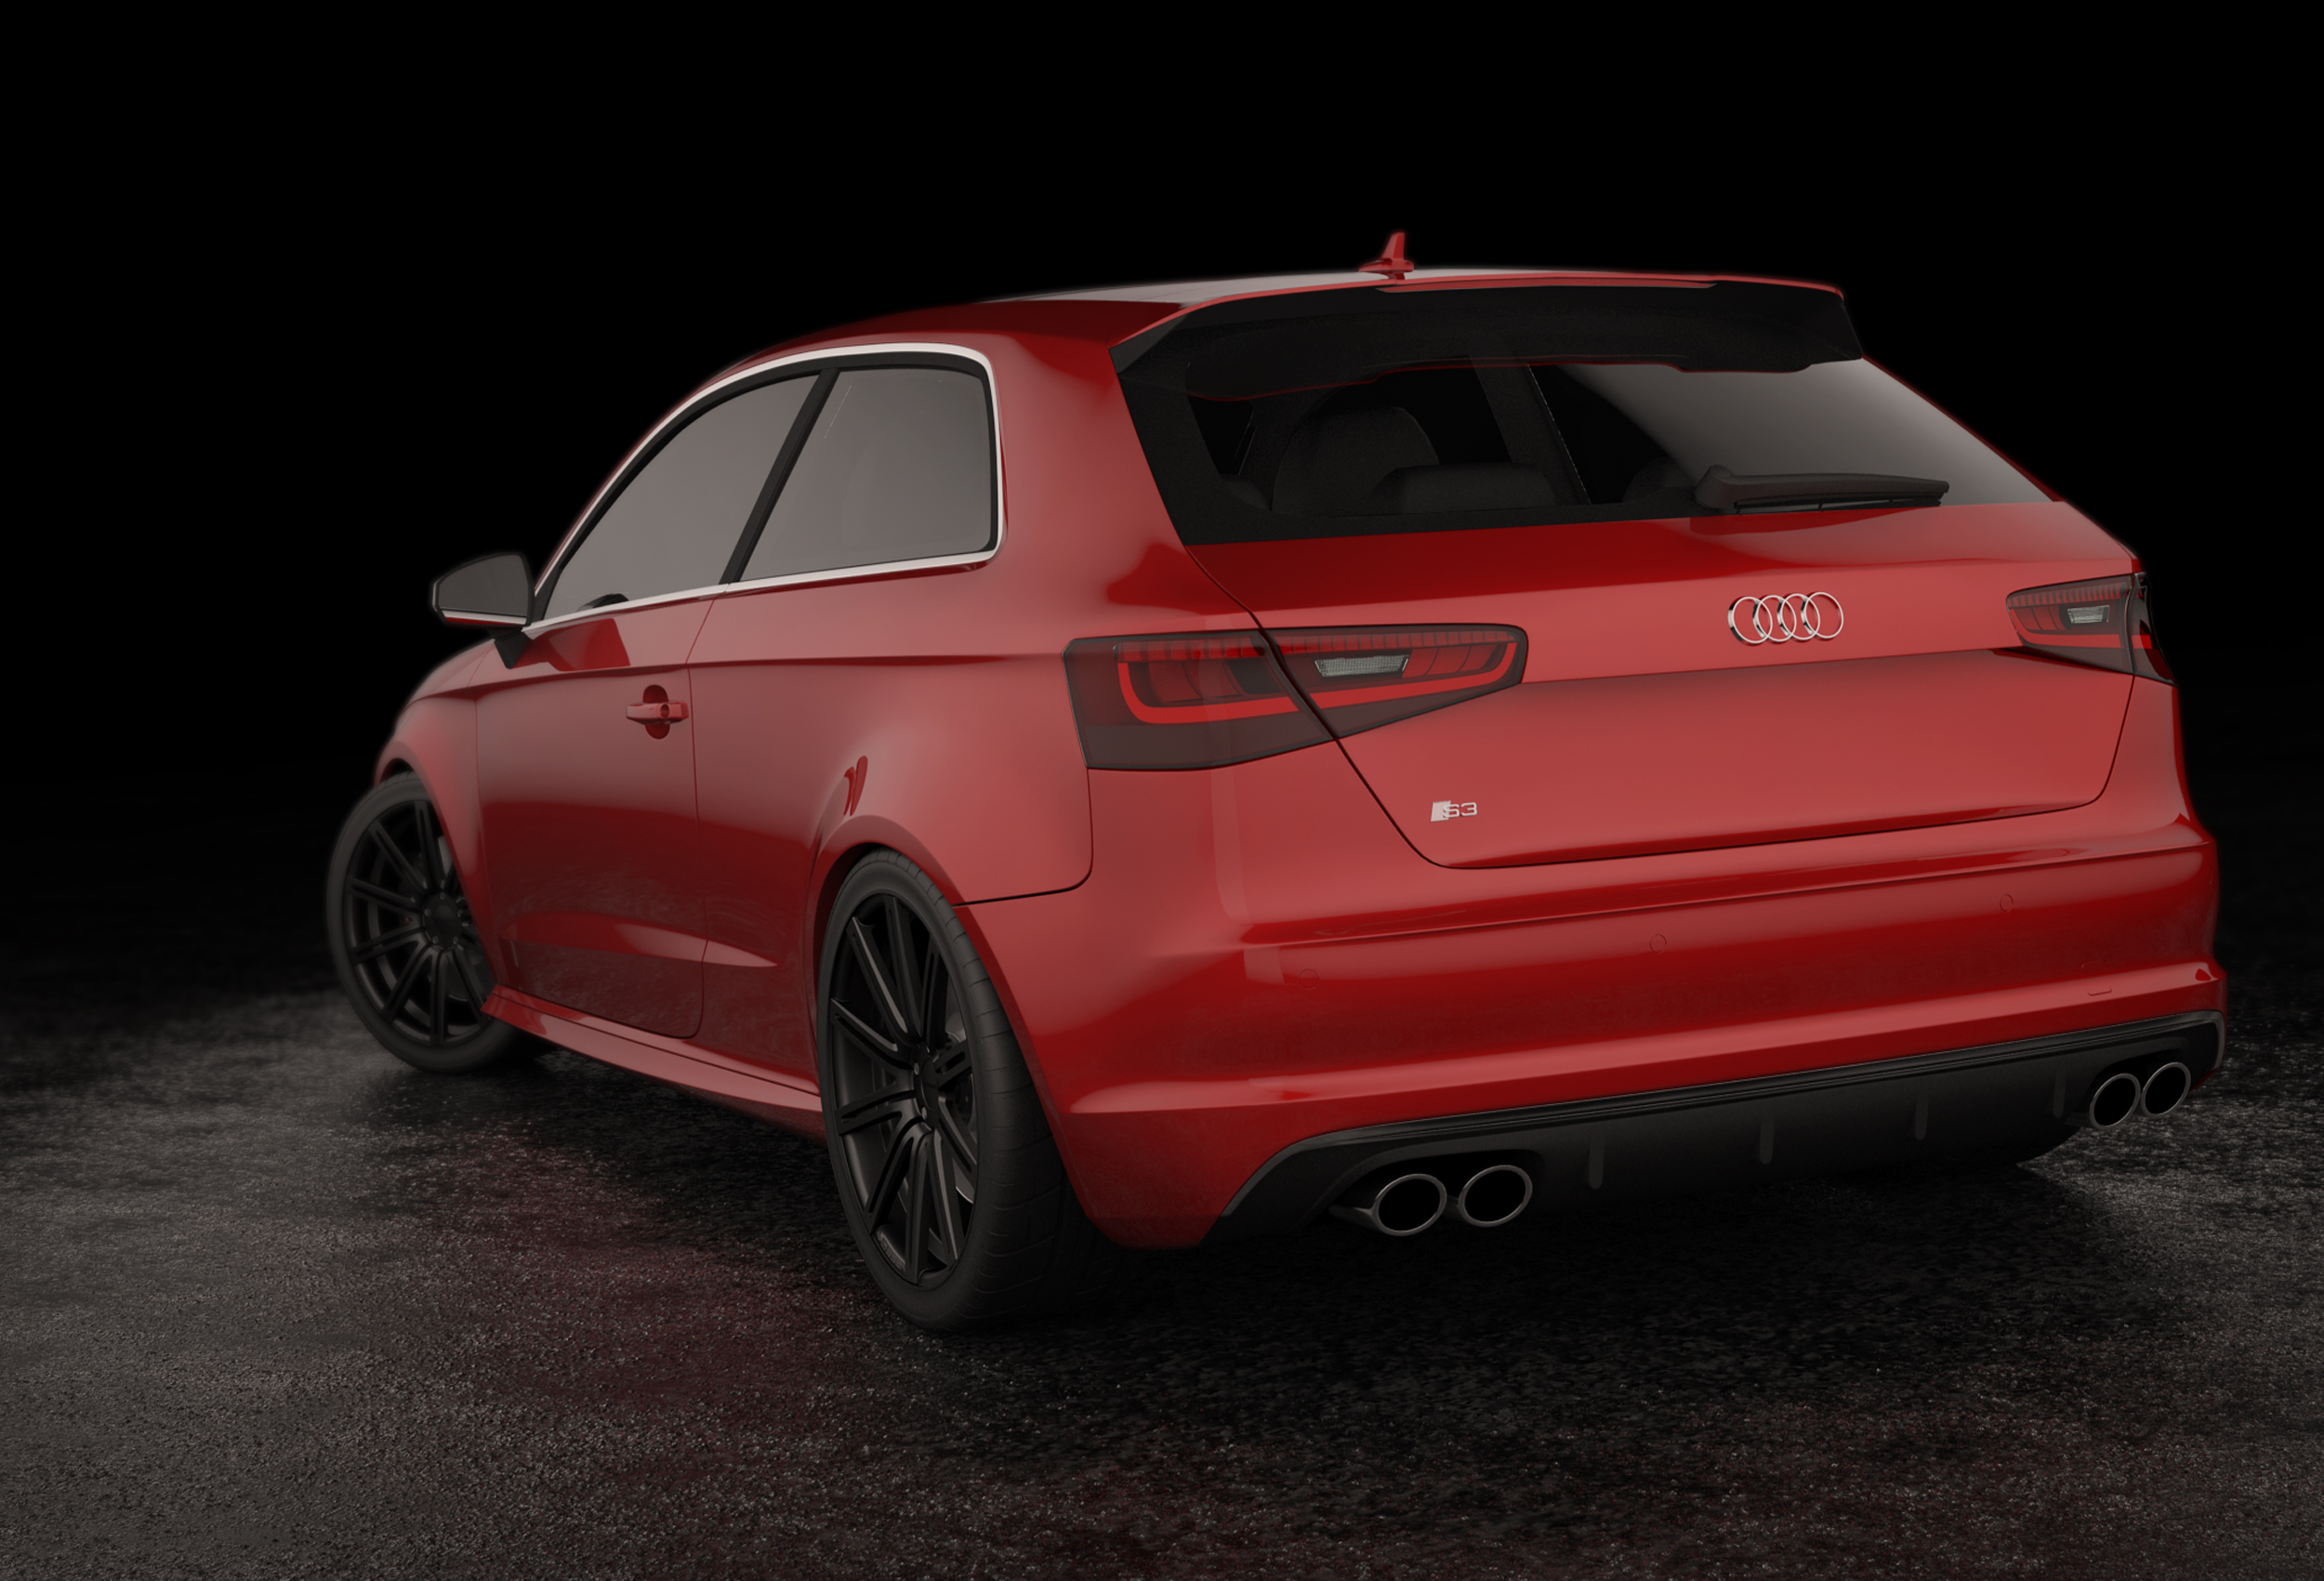 Dripmoon-modelisation-car_design-product-illustrations-3D-arriere-Audi-s3-car_concept-blueprint